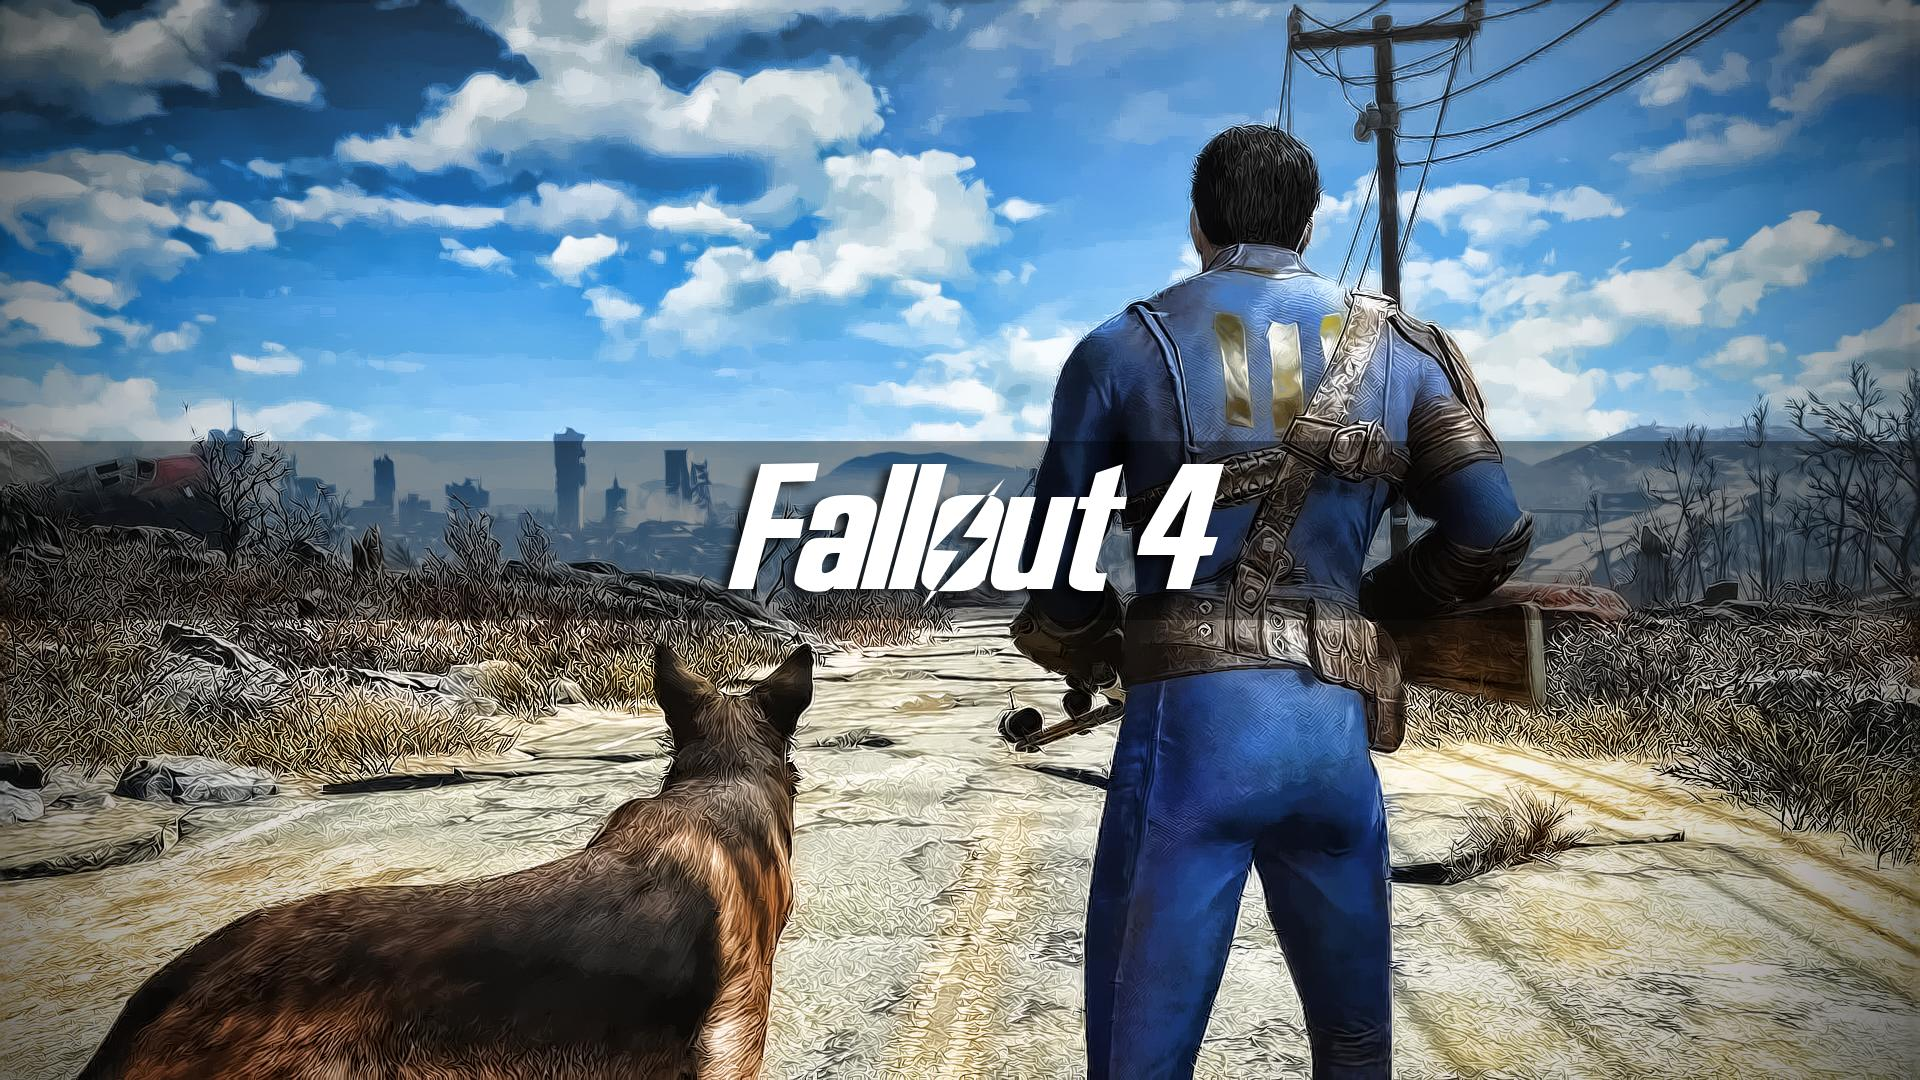 Fallout 4 Hd Wallpapers For Desktop Download